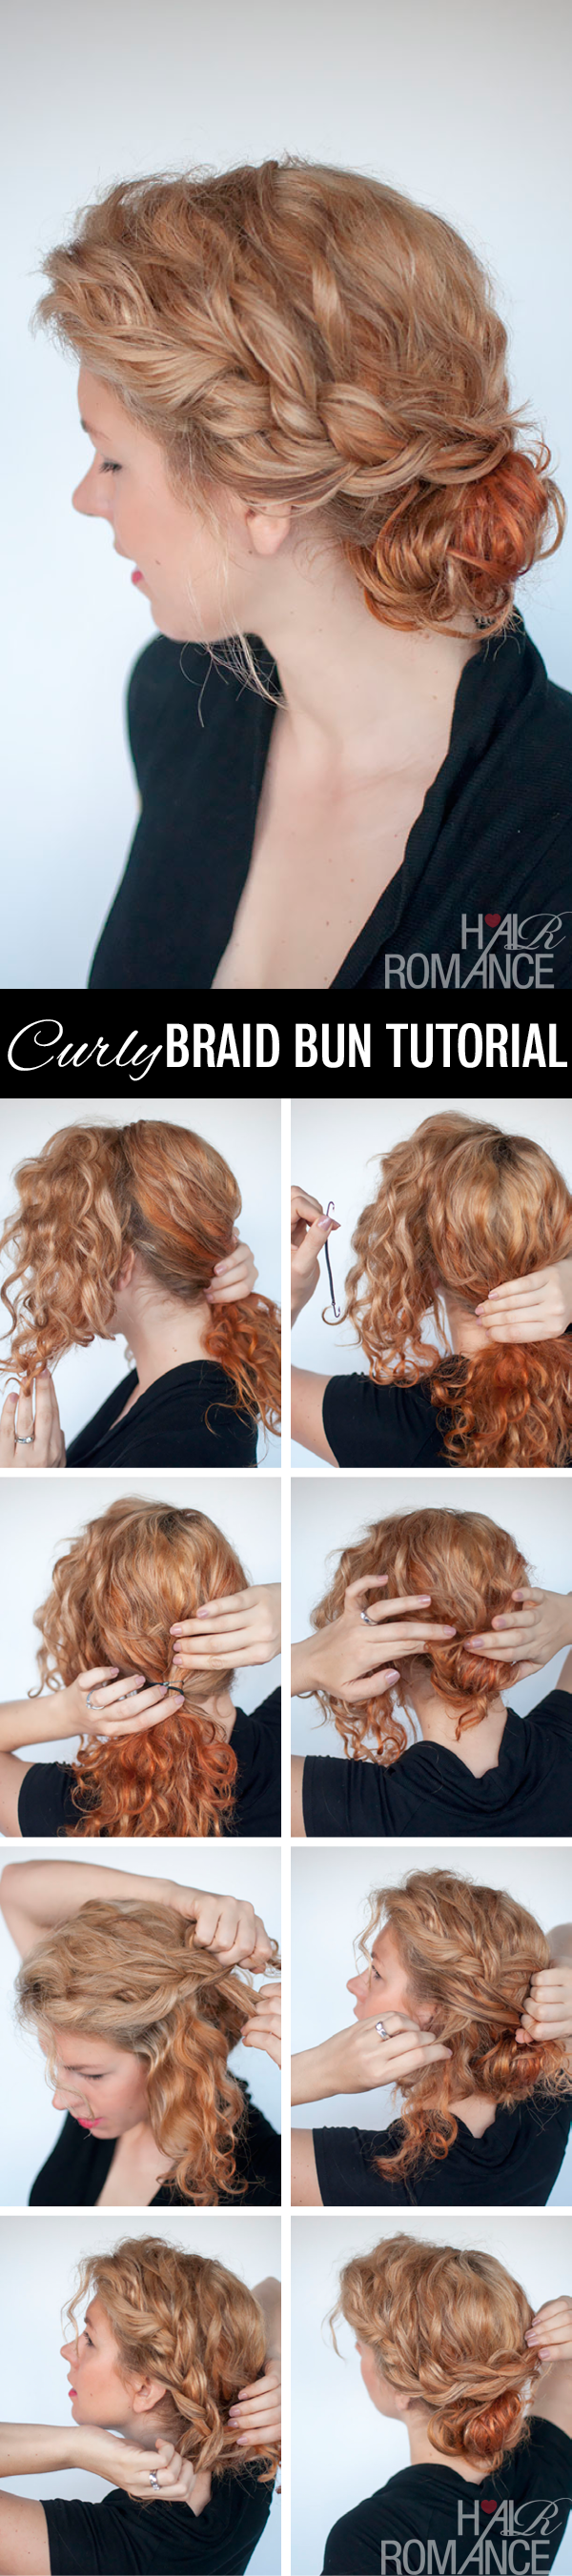 Hair Romance - curly braid bun hair tutorial